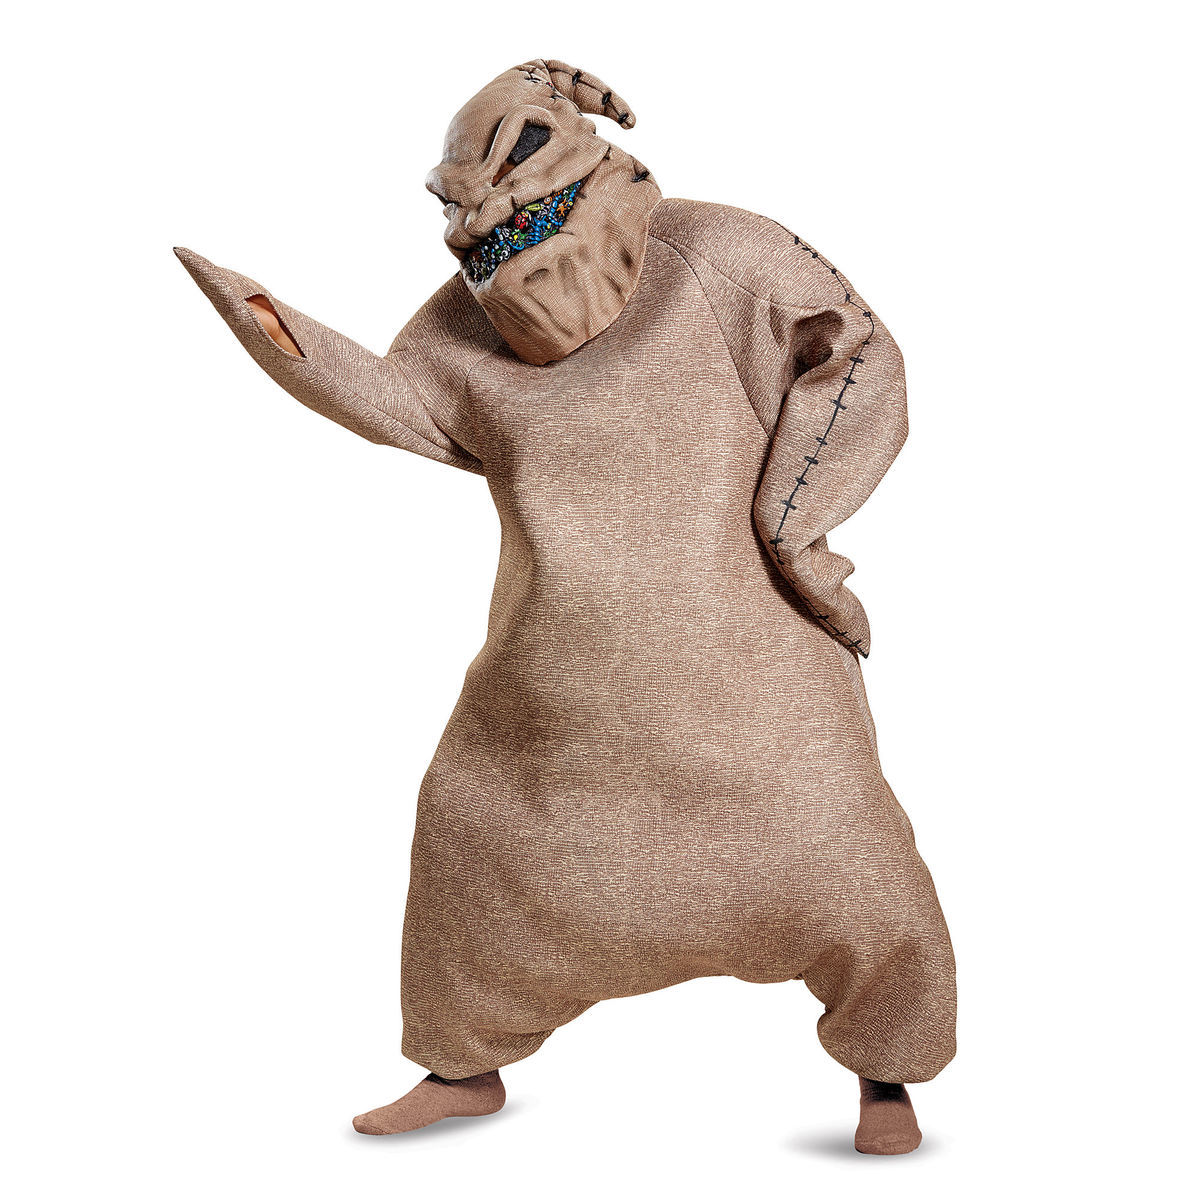 product image of oogie boogie prestige costume for adults by disguise the nightmare before christmas - The Nightmare Before Christmas Oogie Boogie